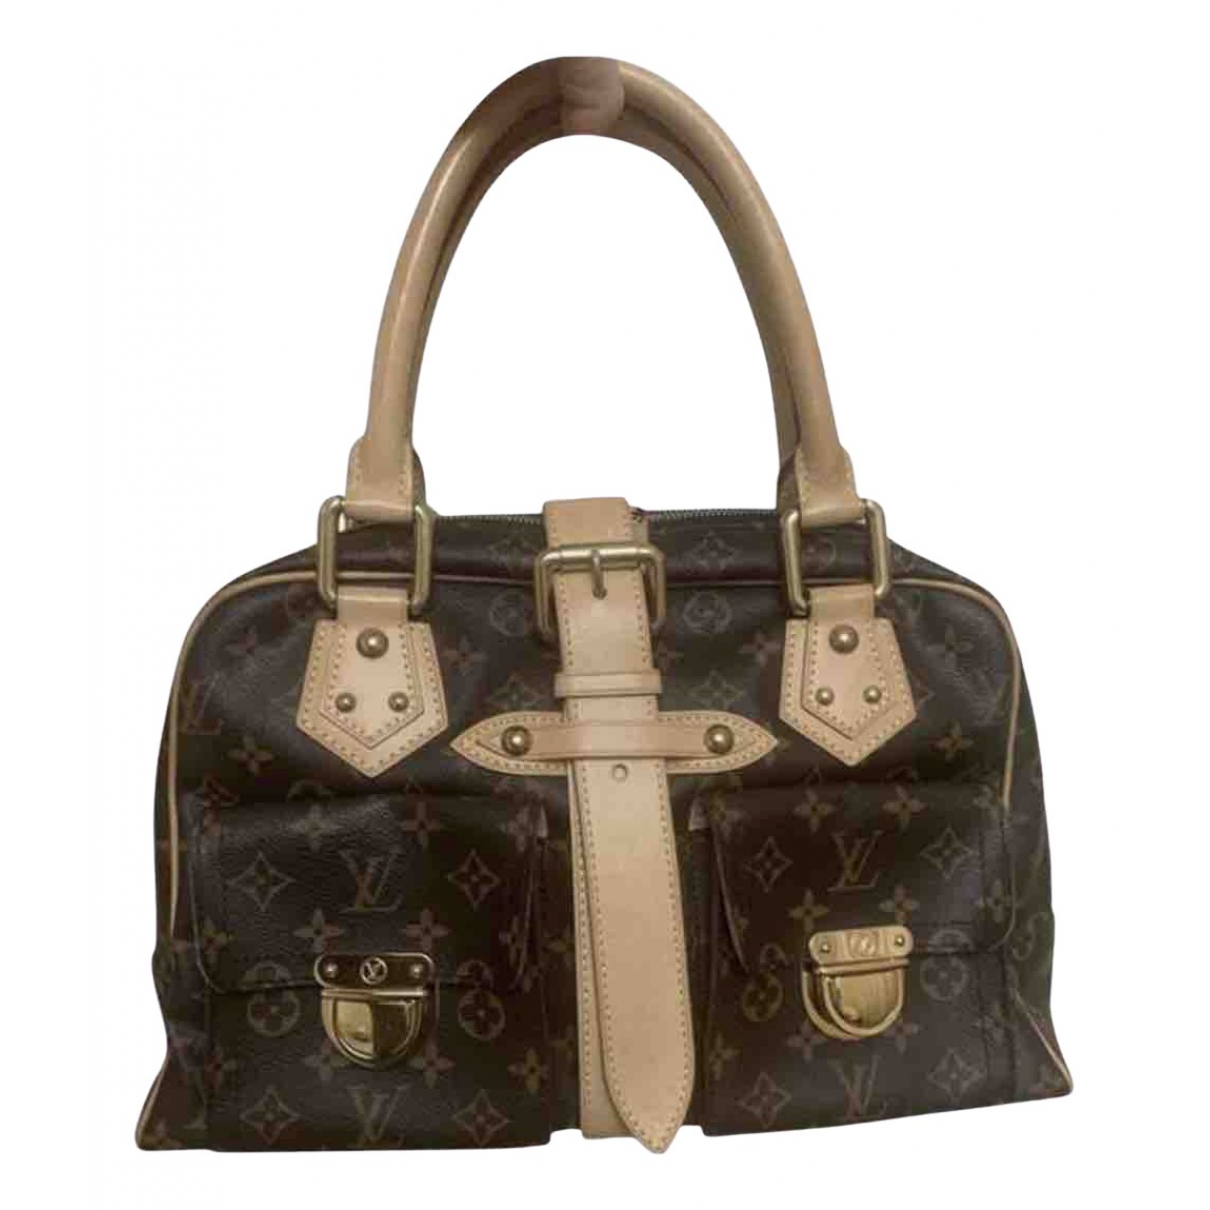 Louis Vuitton - Sac a main Manhattan pour femme en toile - marron